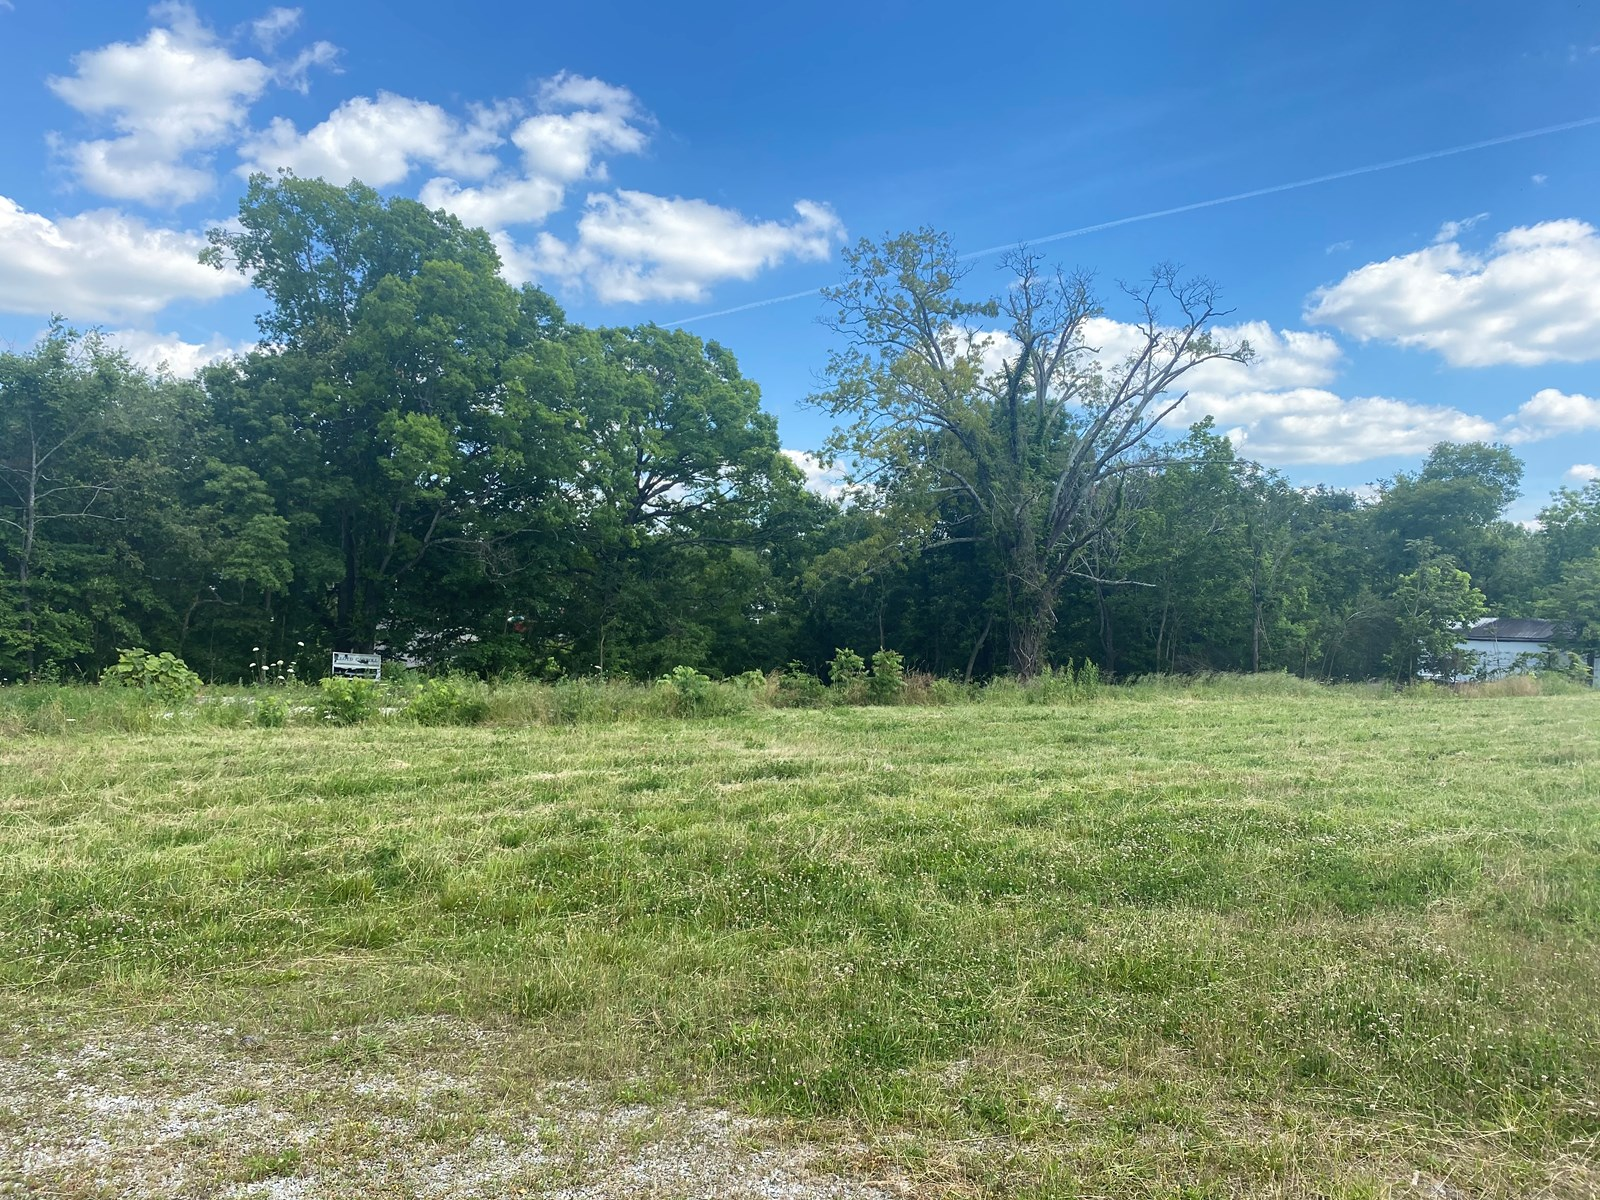 Commercial property for sale in Tennessee